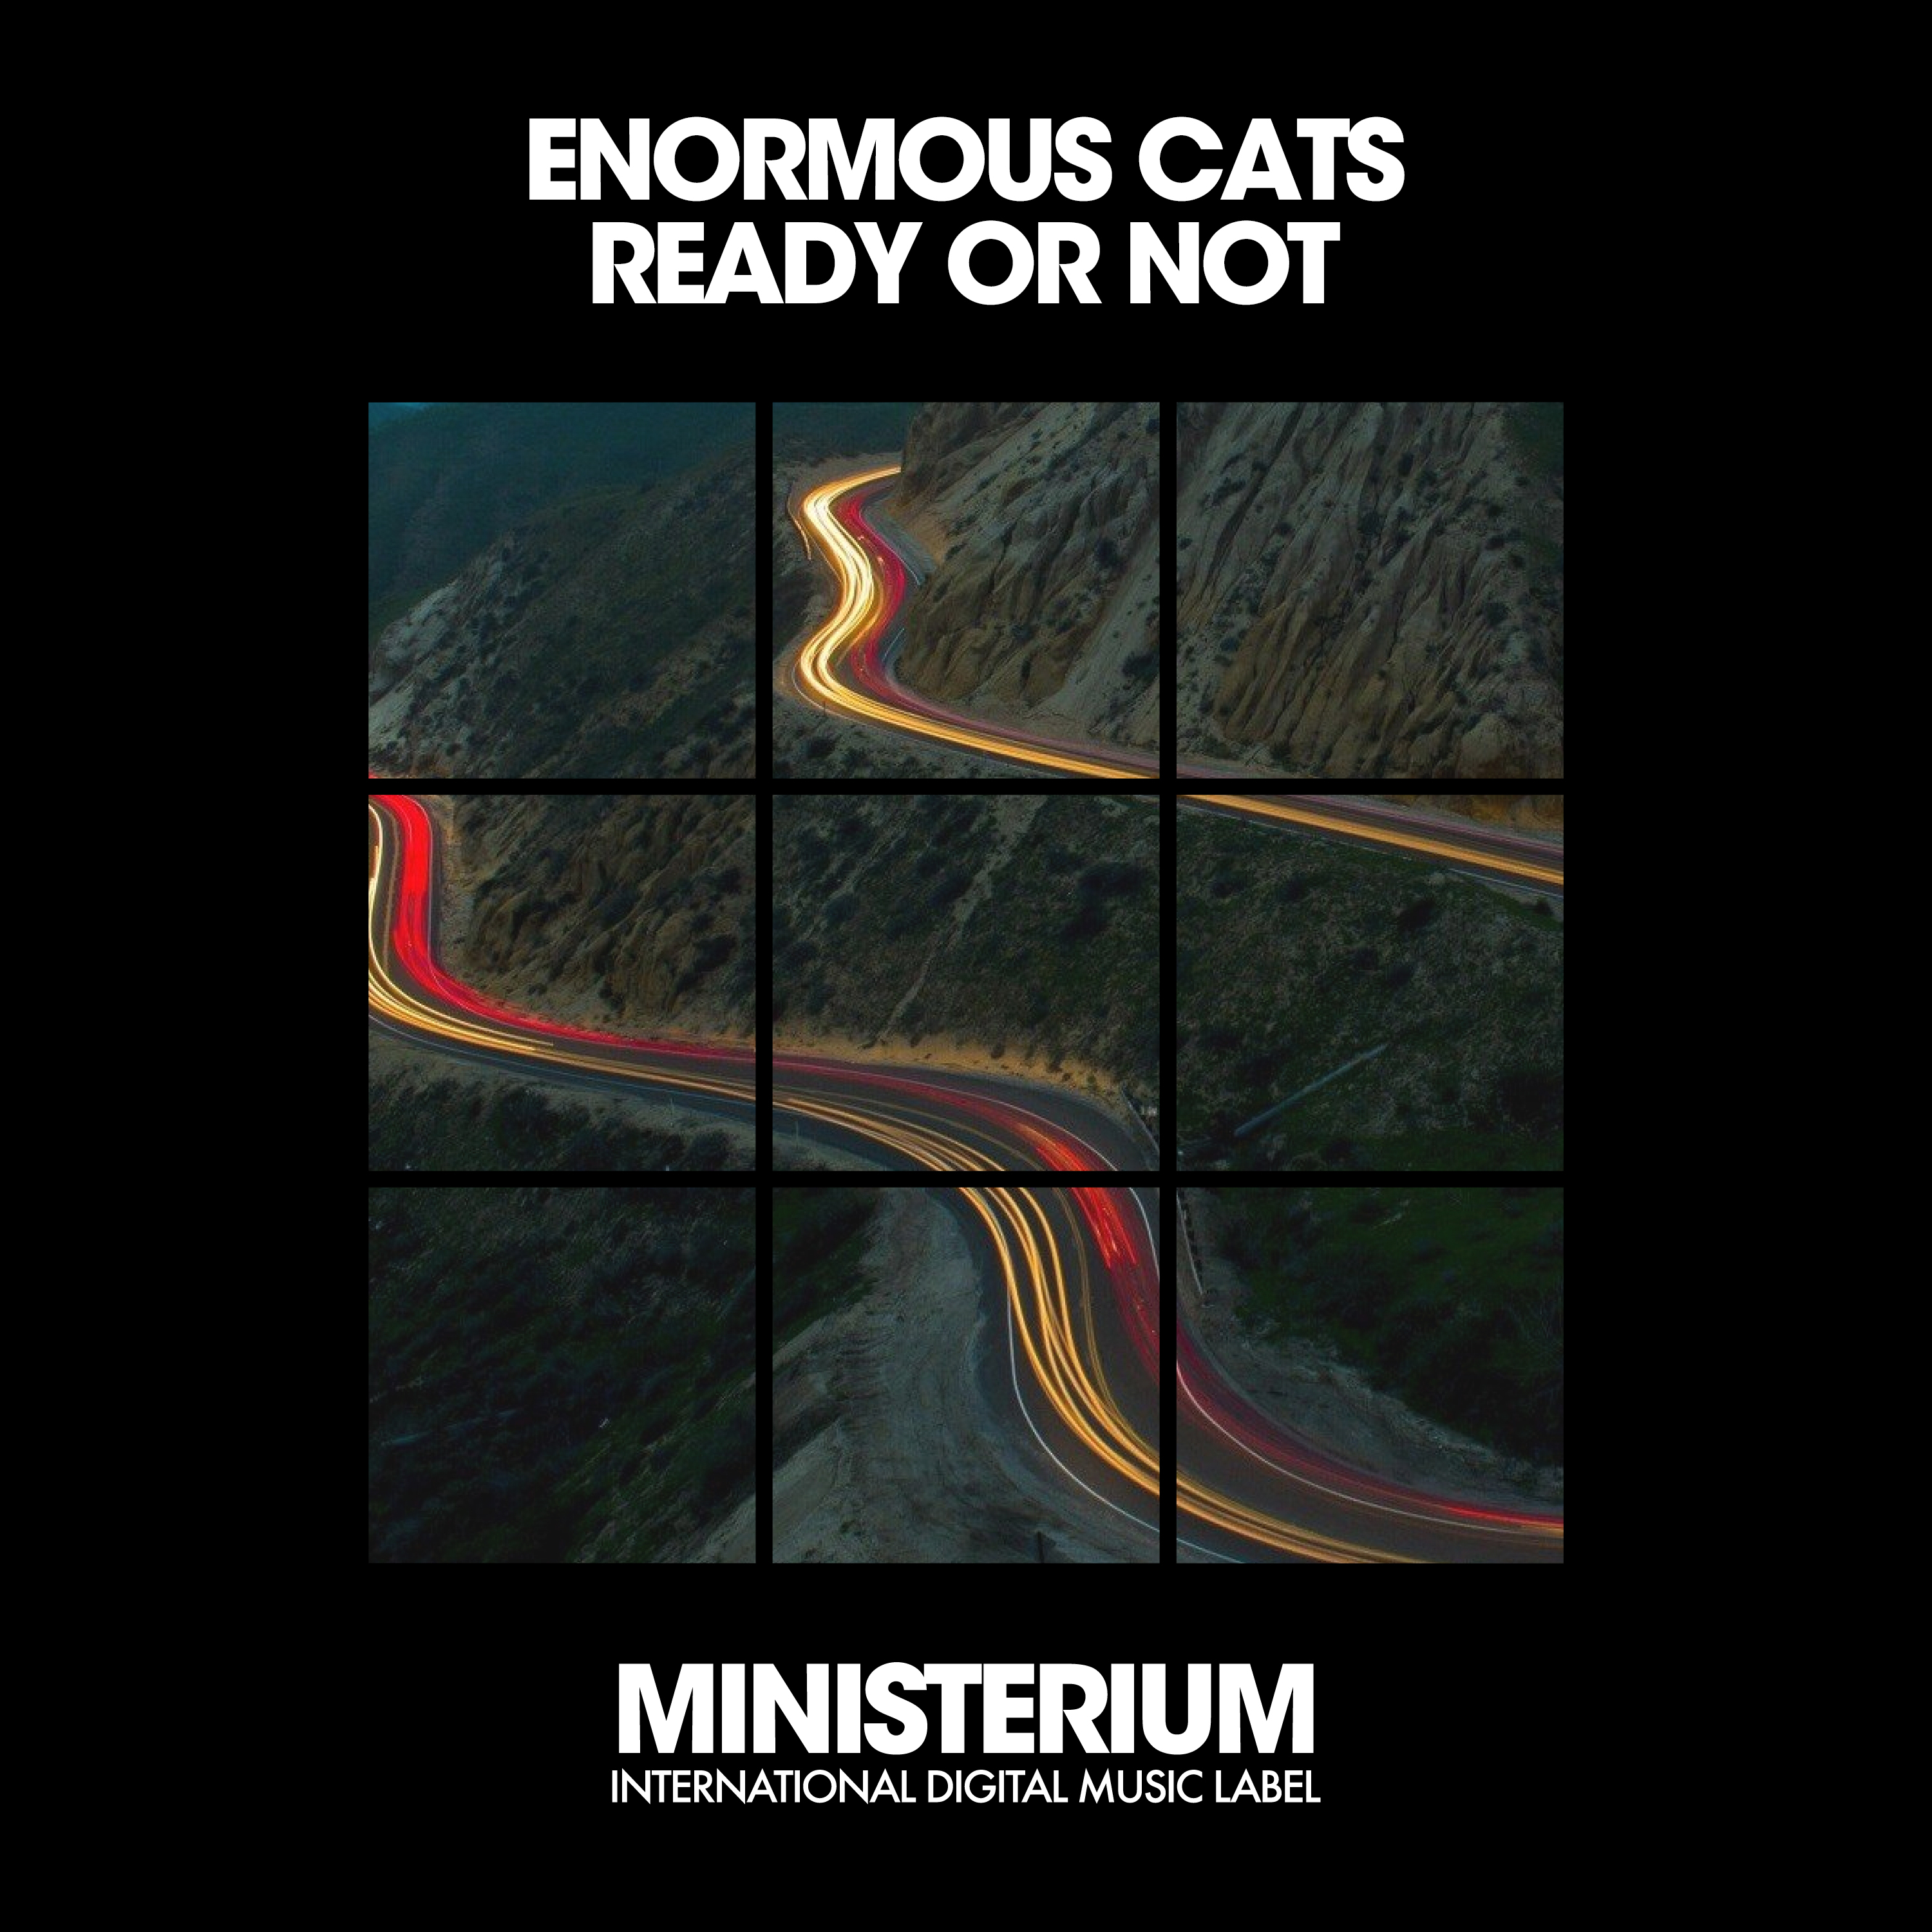 Enormous Cats - Ready Or Not (Instrumental Mix)